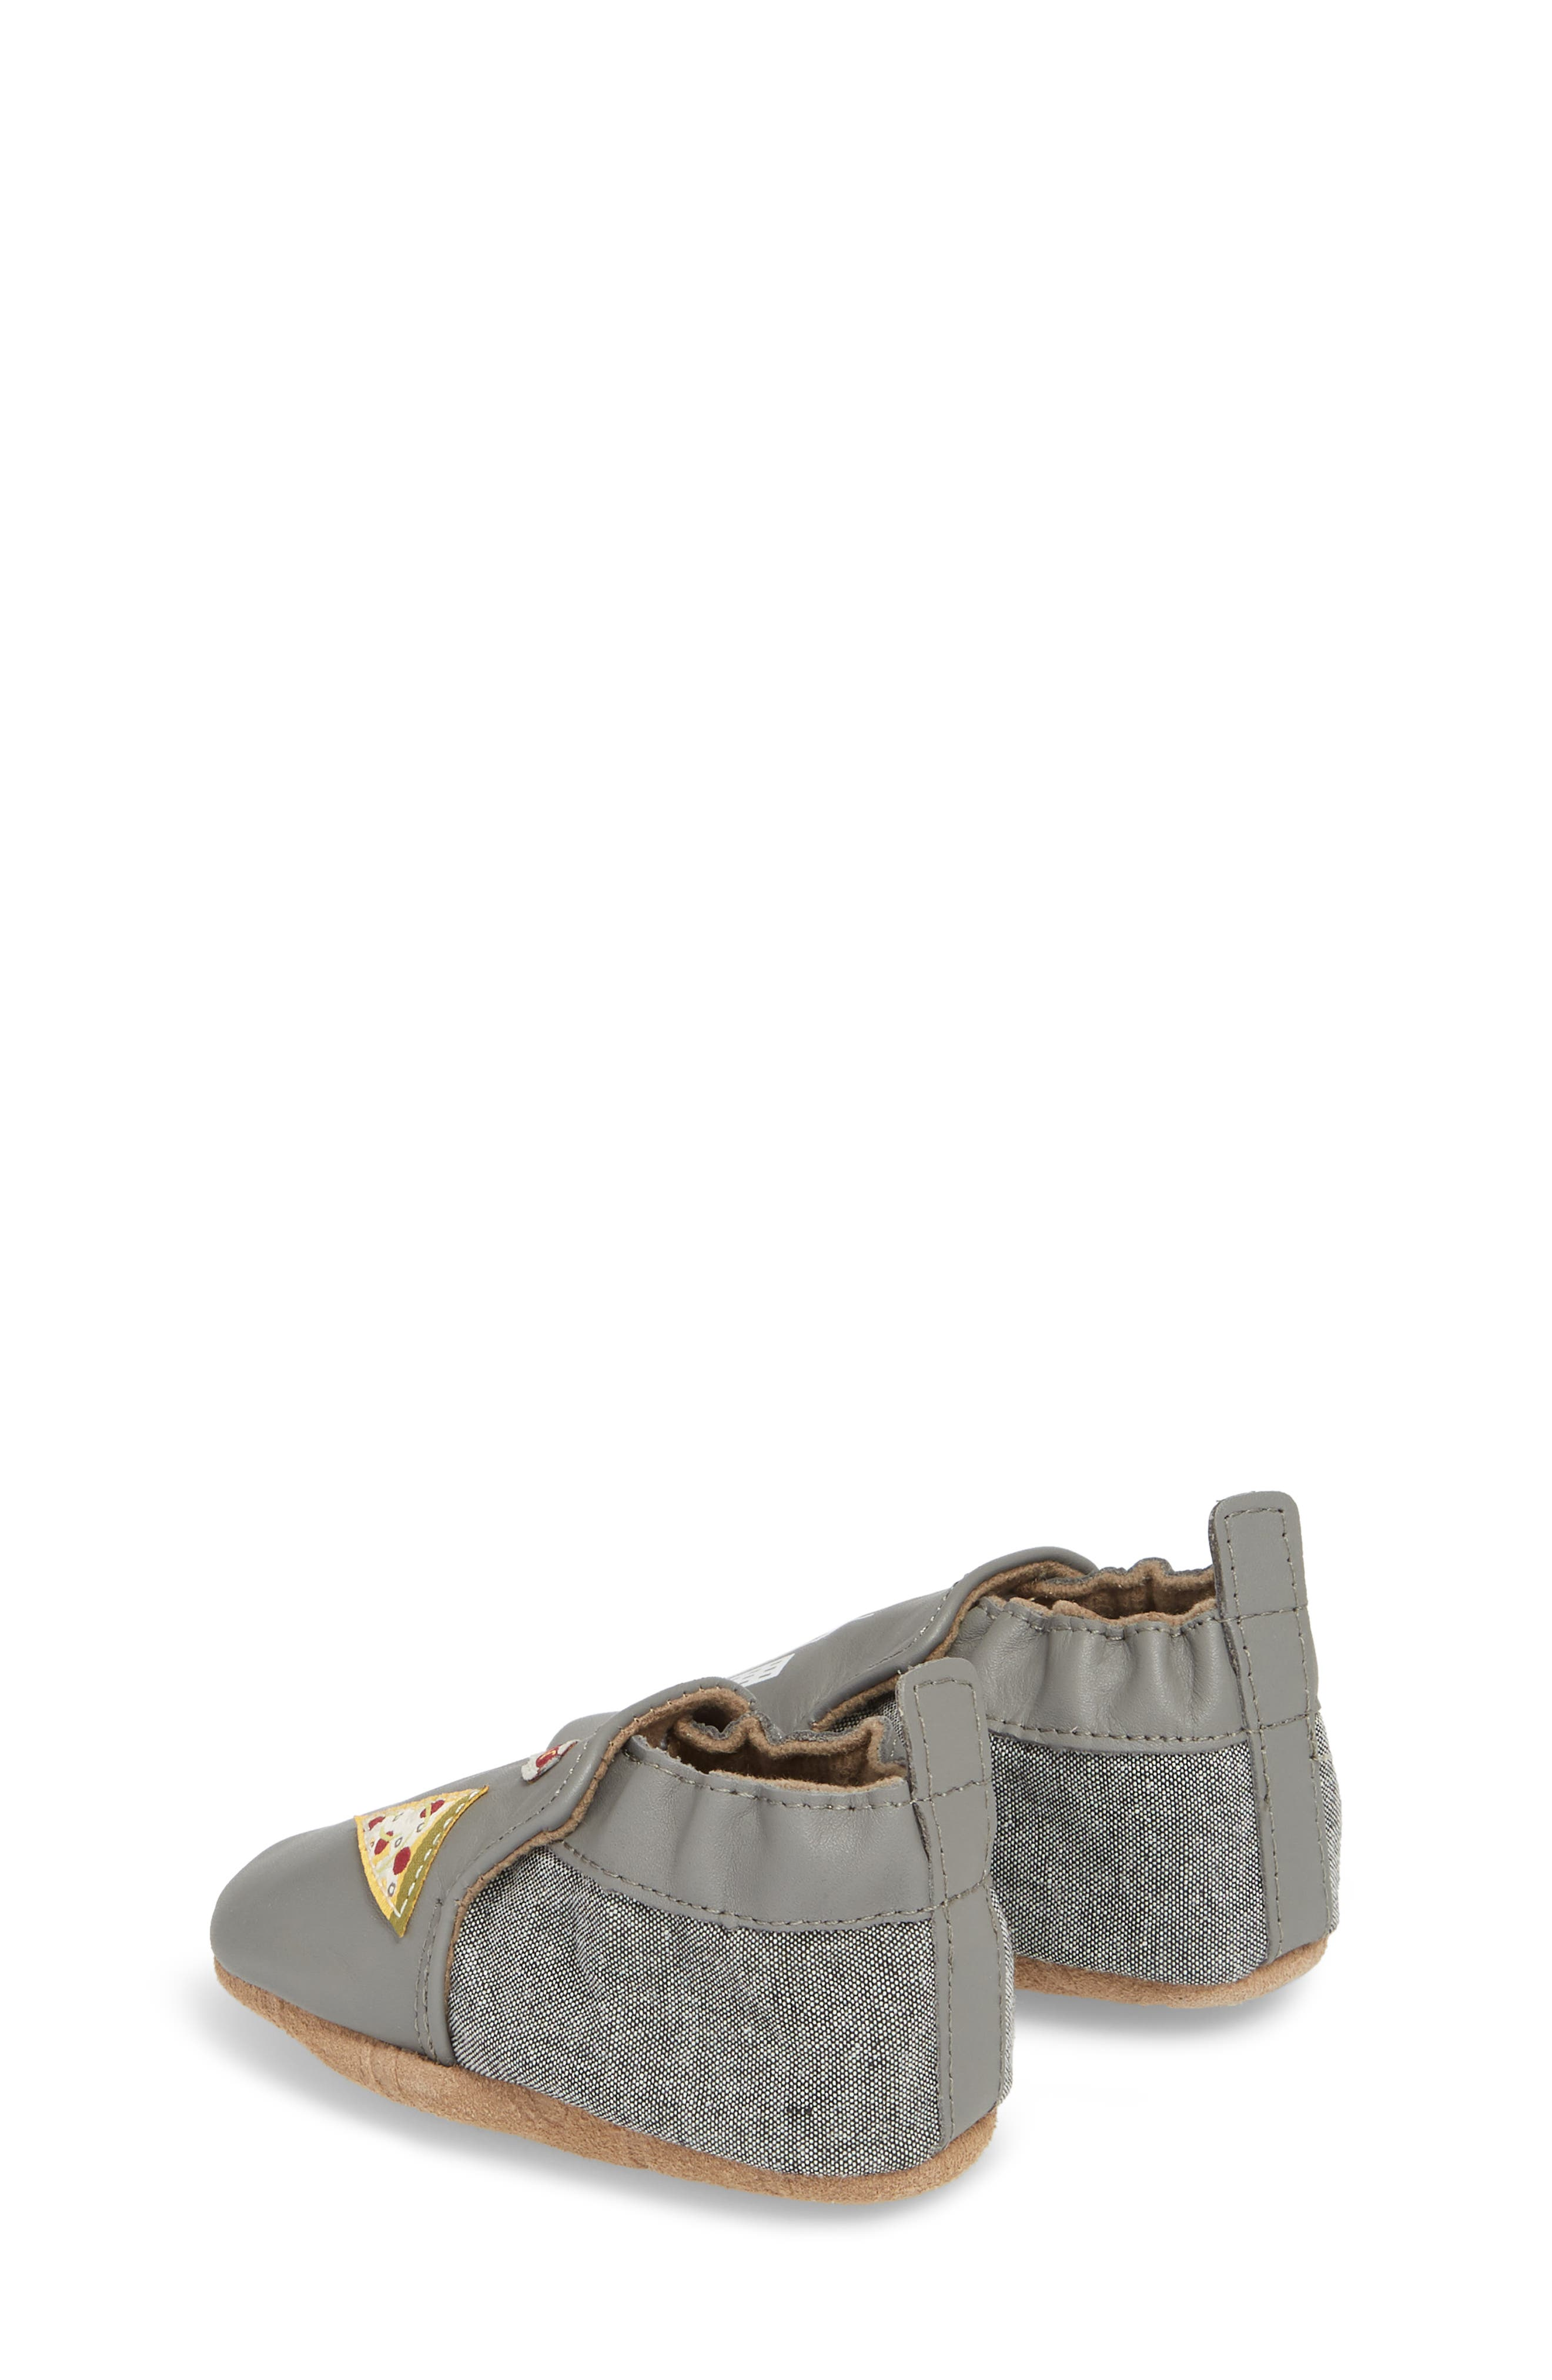 City Life Moccasin Crib Shoe,                             Alternate thumbnail 2, color,                             Grey